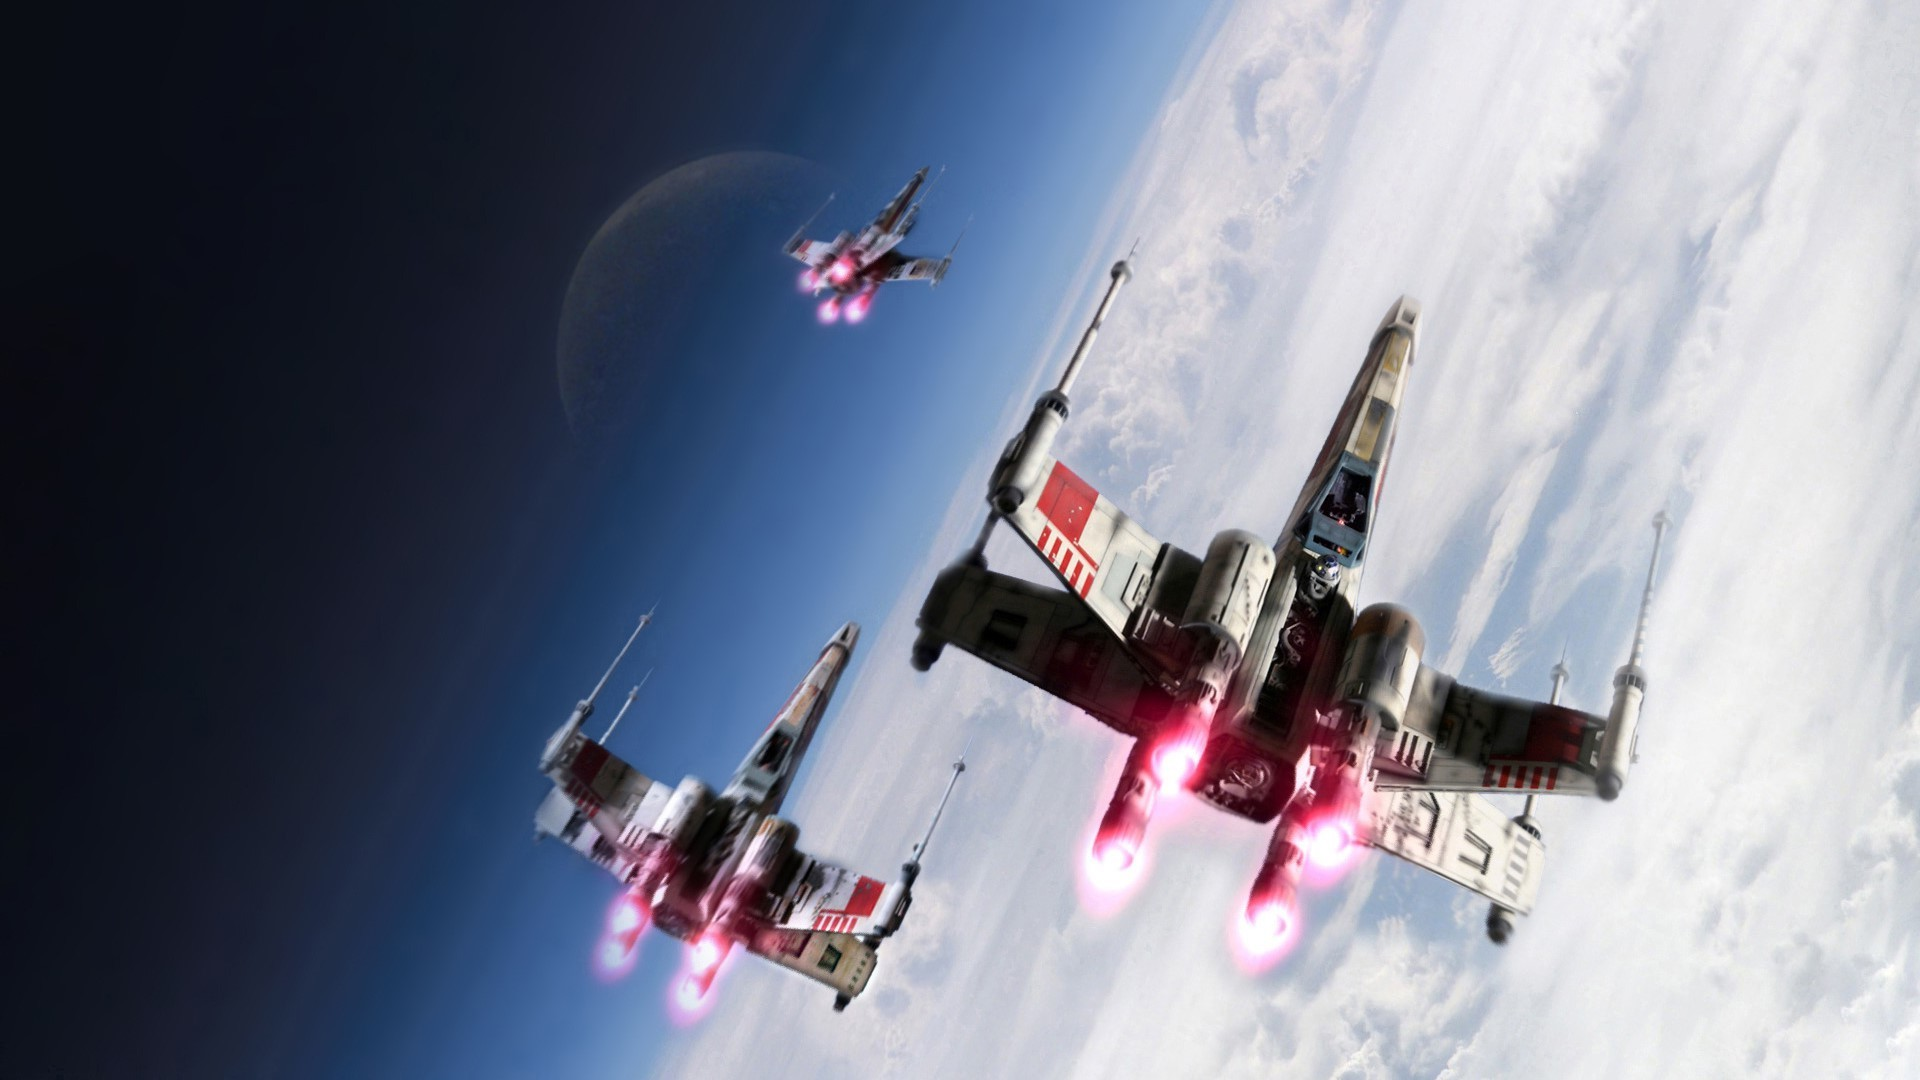 1920x1080 Star Wars Force Awakens XWing Wallpaper by HD Wallpapers Daily 1920×1080 X  Wing Wallpaper